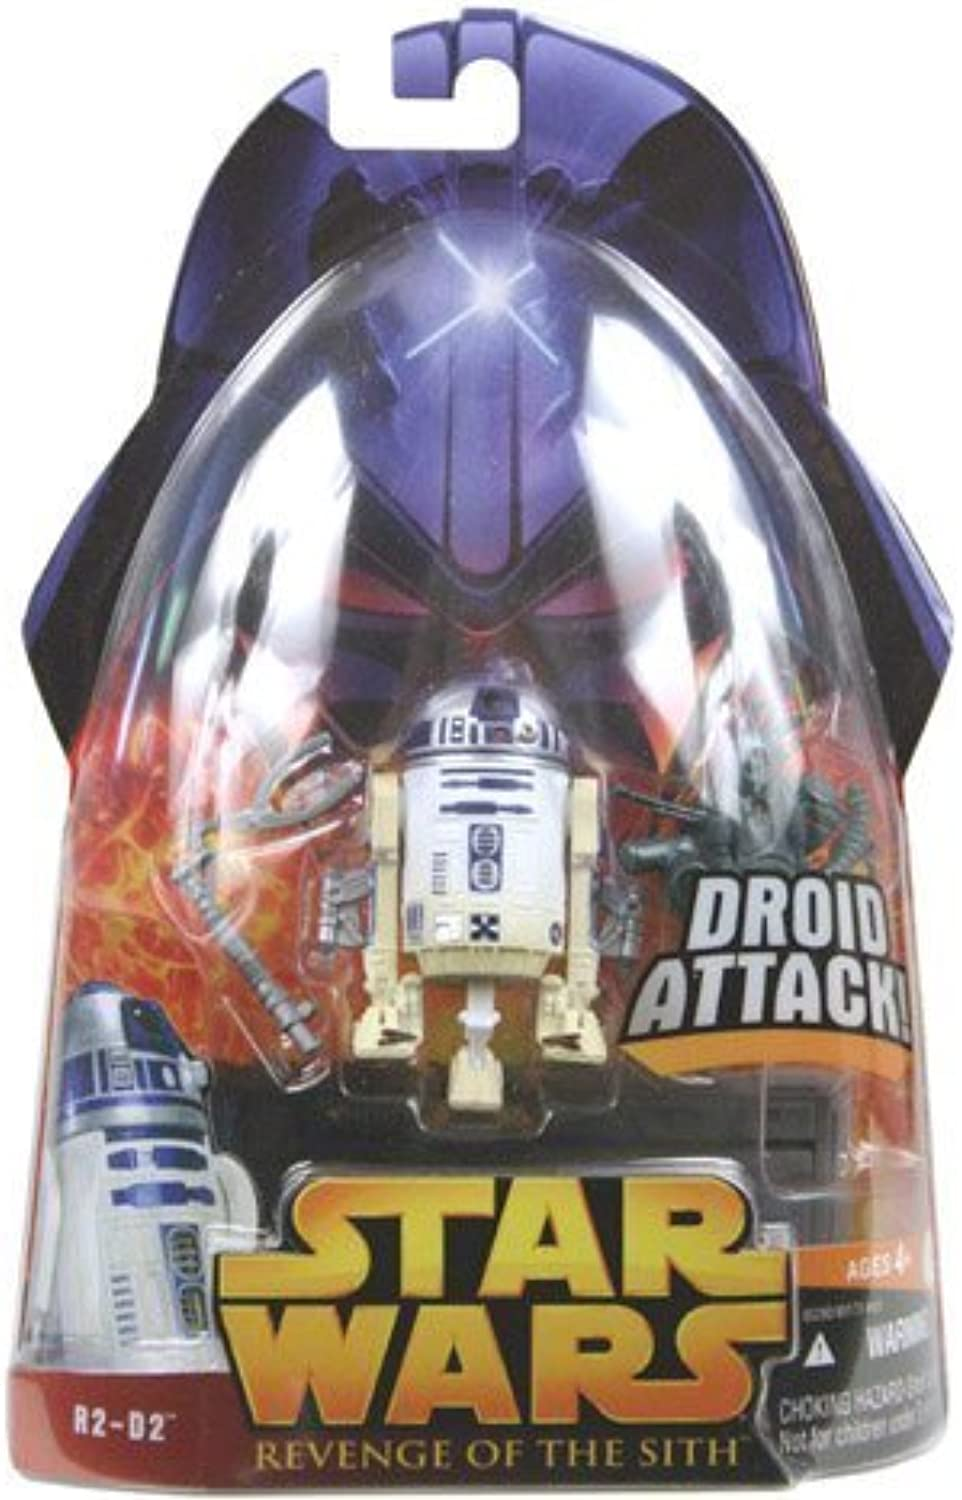 STAR WARS REVENGE OF THE SITH R2D2 DROID ATTACK